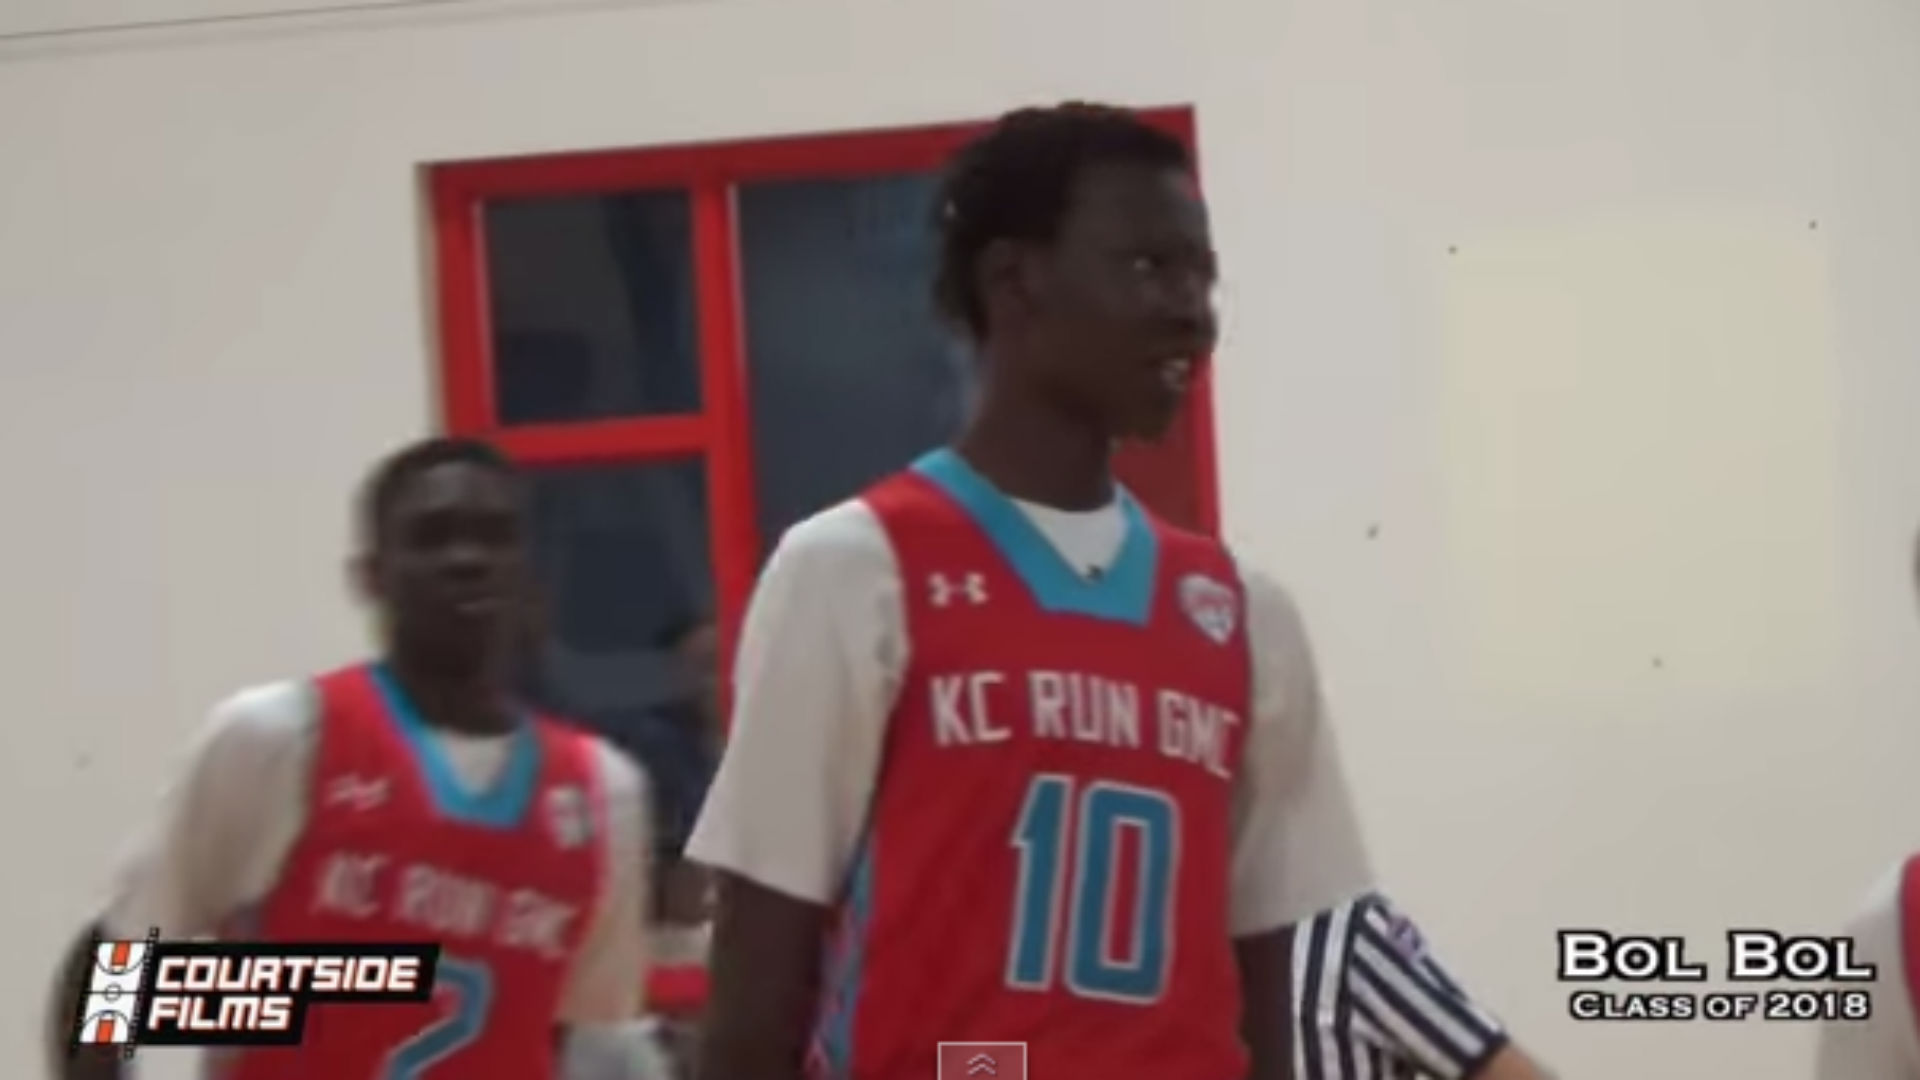 Meet Bol Bol, Manute Bol's 6-10 son tearing up the competition